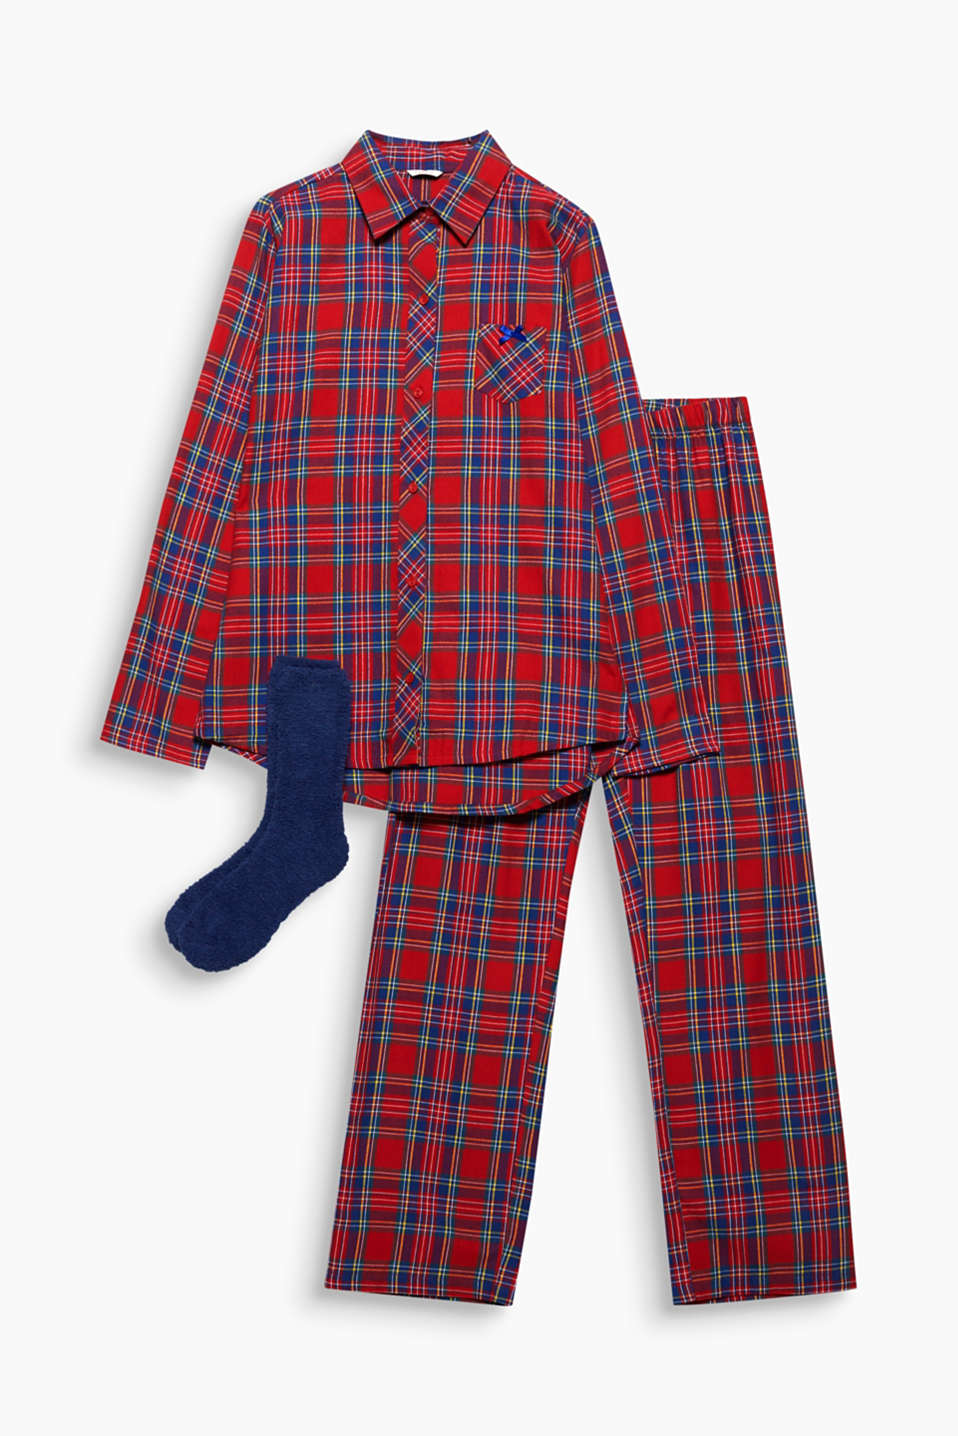 The perfect gift: these flannel pyjamas with a trendy check make a great set with the cosy socks!